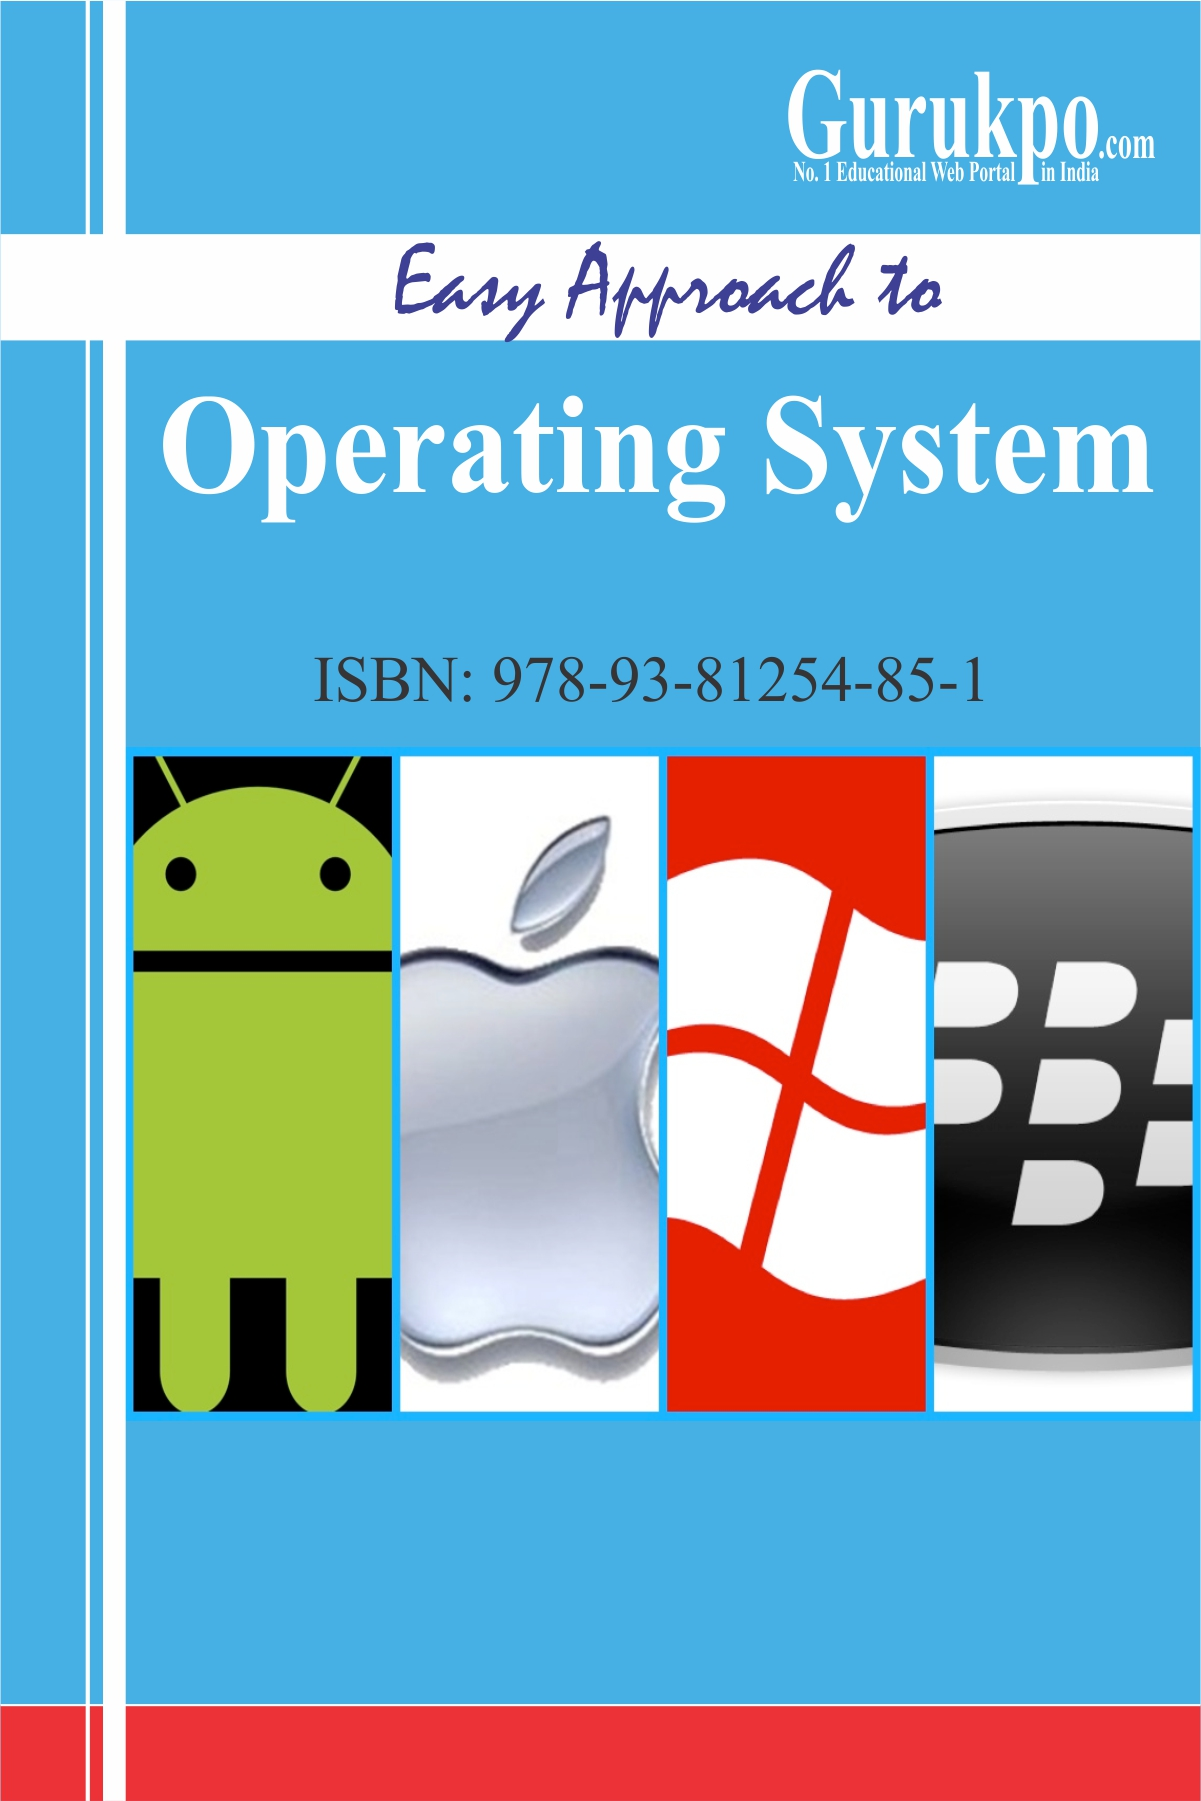 OPERATING SYSTEM (THINK-TANK) Archives | Free Study Notes